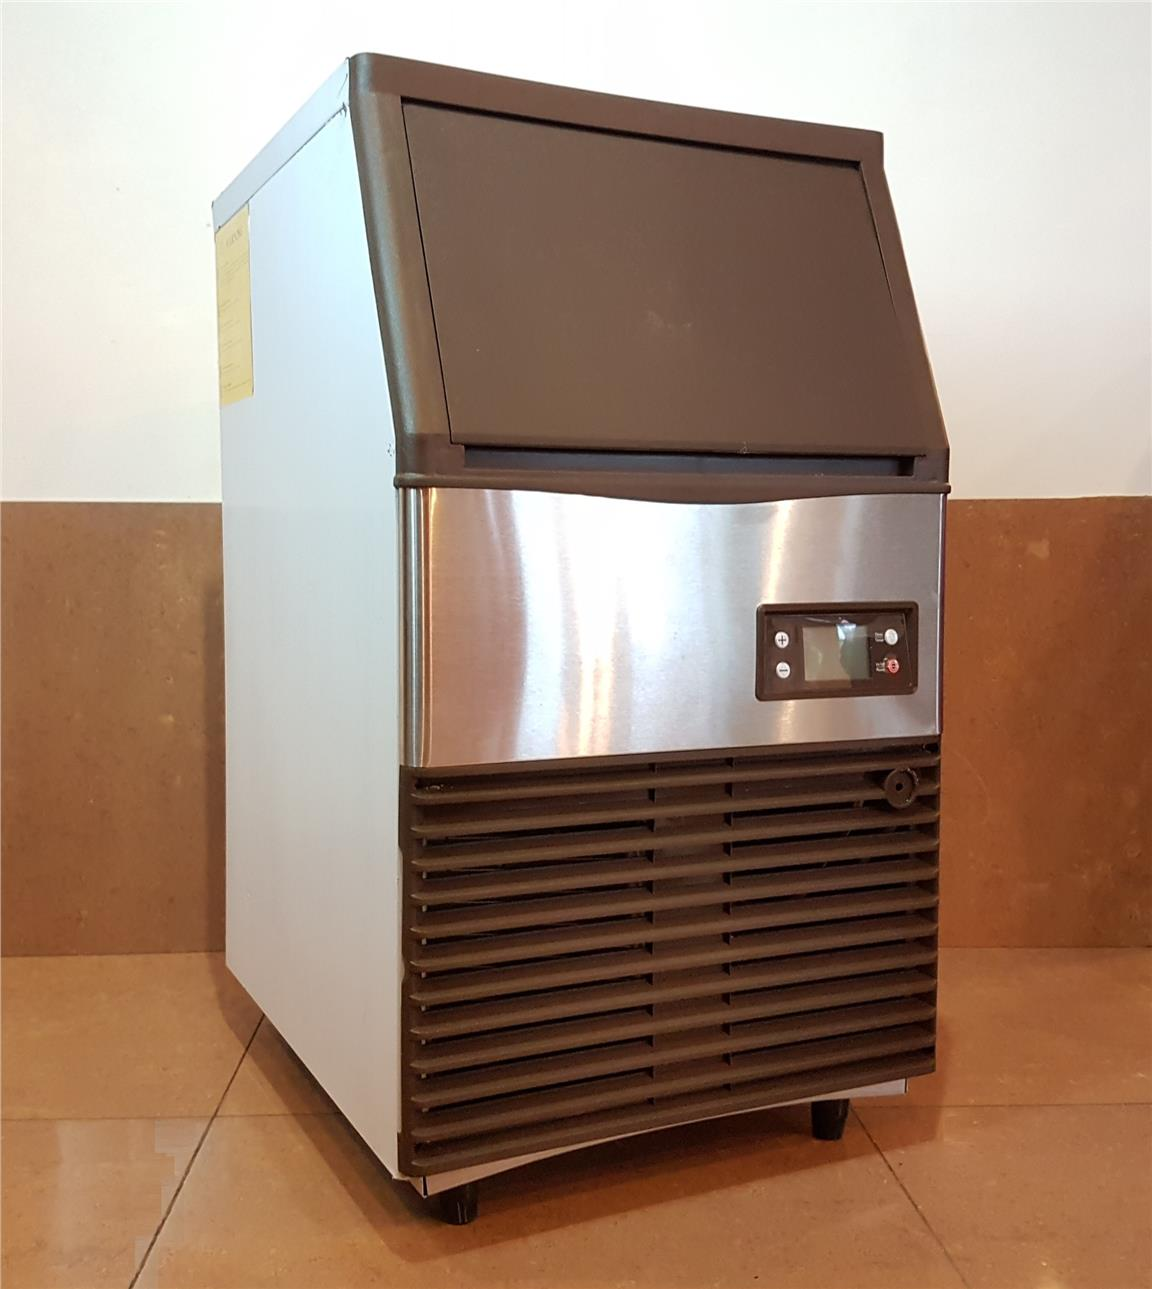 ICE MAKER SD-48 ID119741